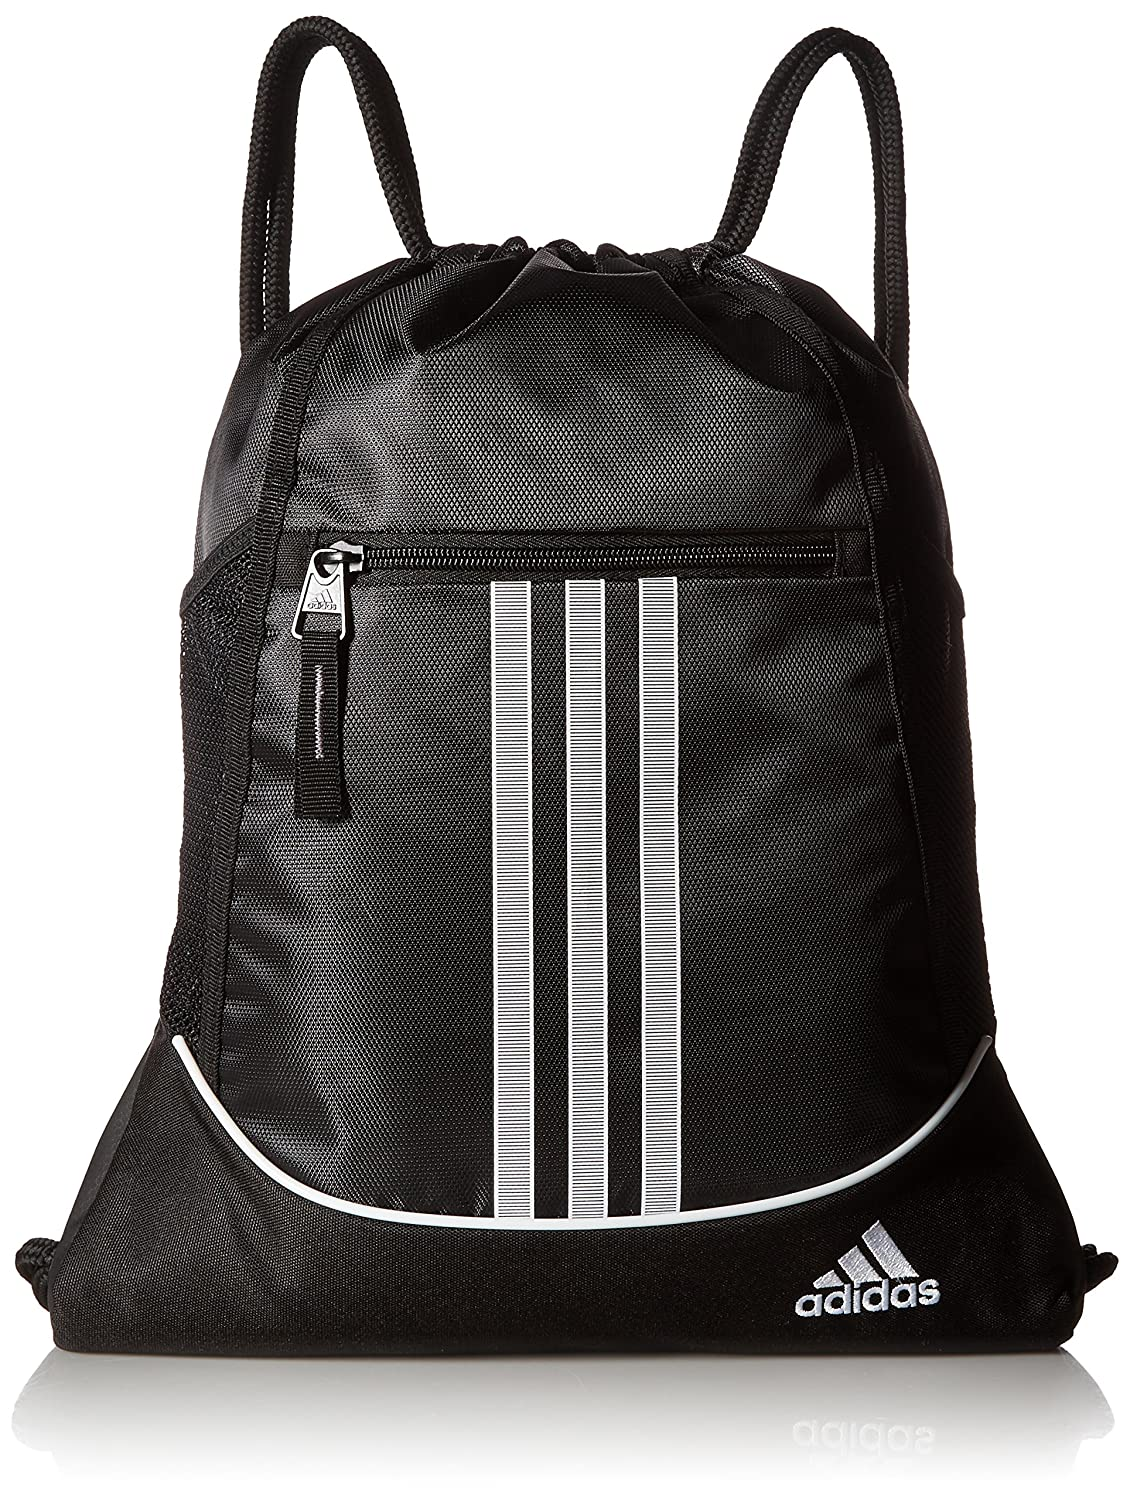 Drawstring Backpack Adidas Sport Gym Sack Bag School Clothes Shoes ...